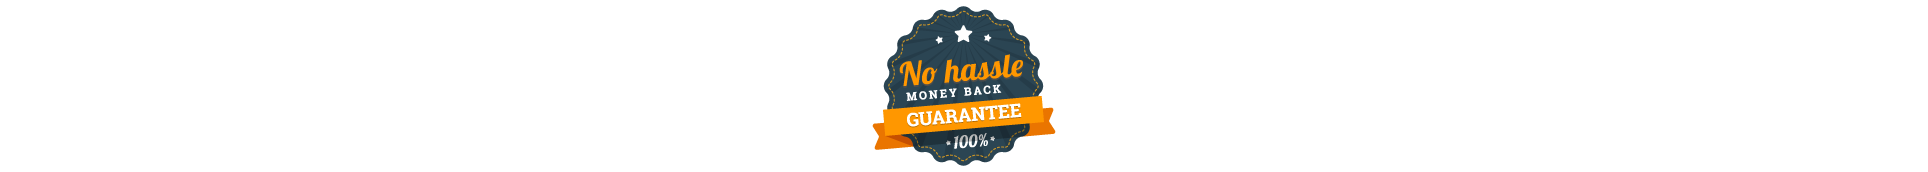 guarantee-homepage-horizontal.png